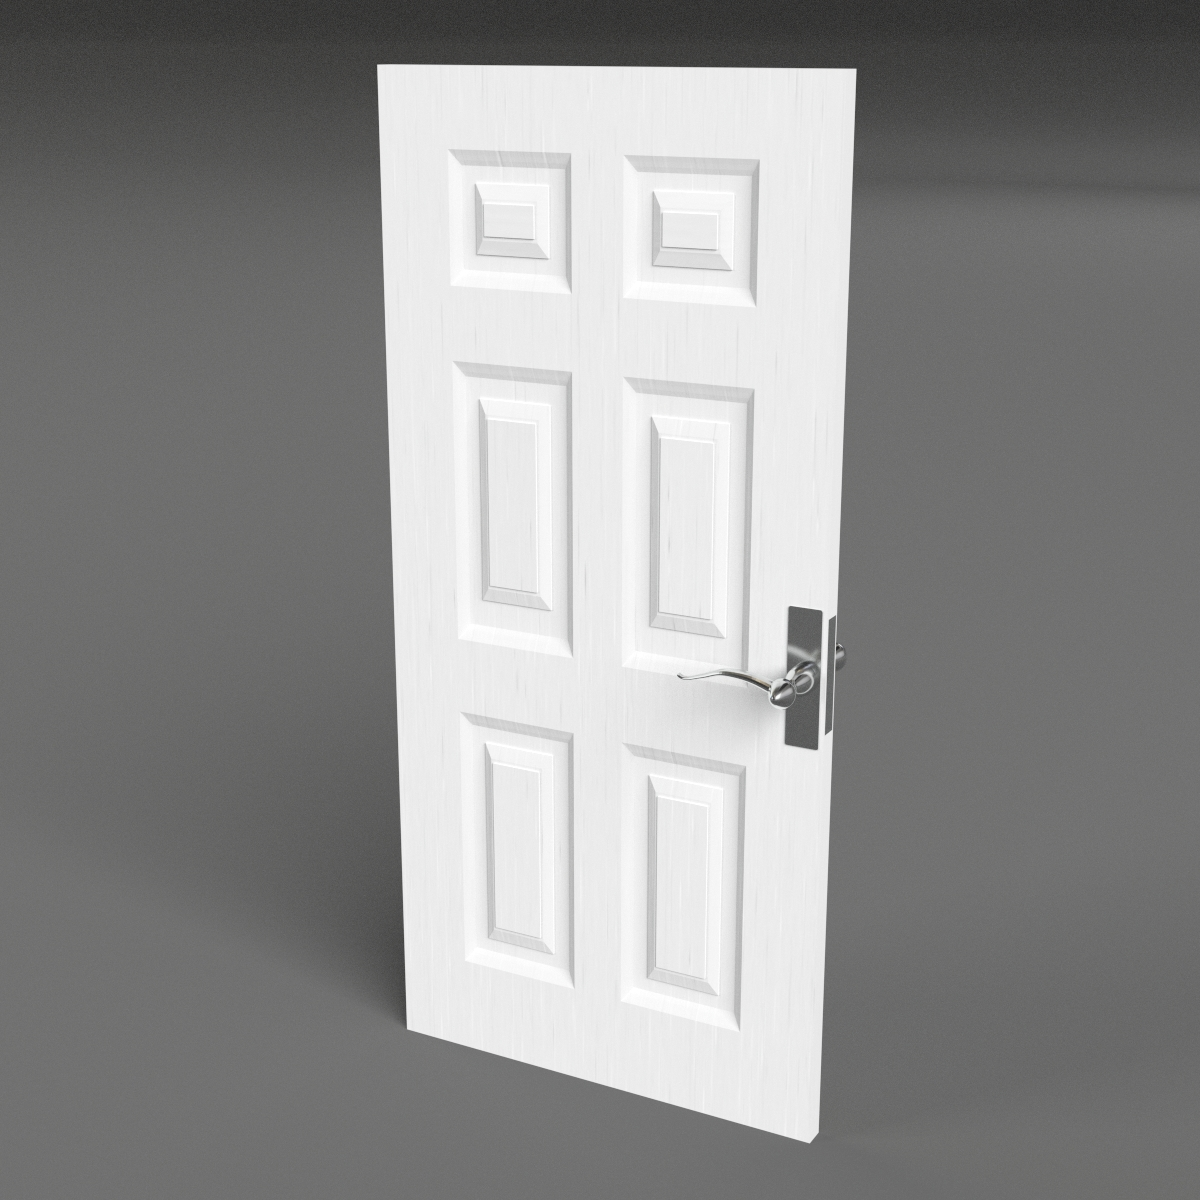 Six Raised Panel Door